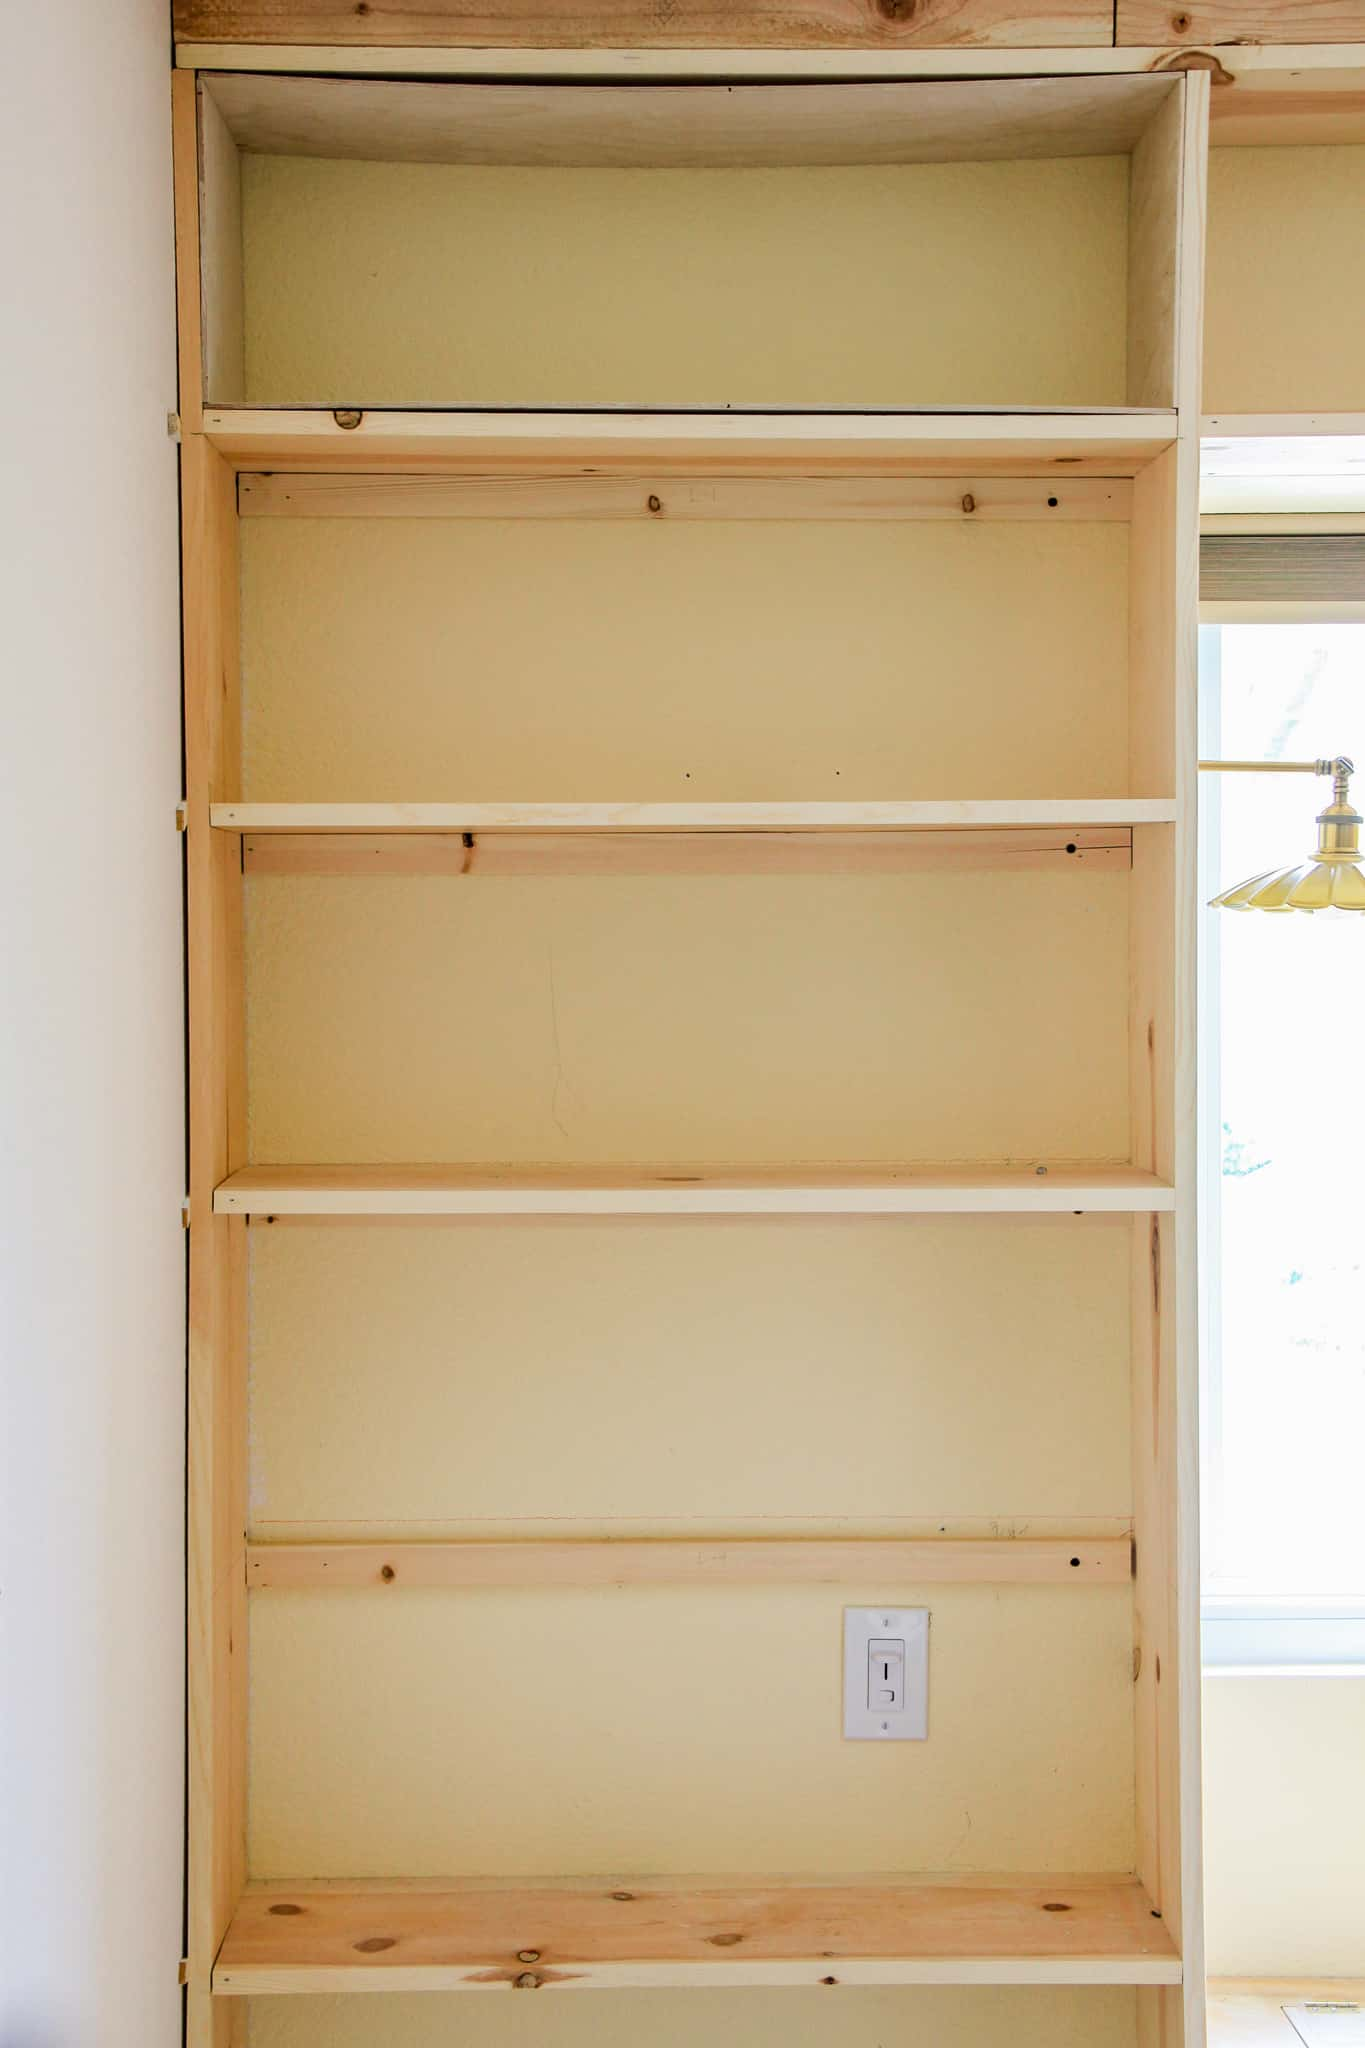 pine built-in shelves against yellow wall